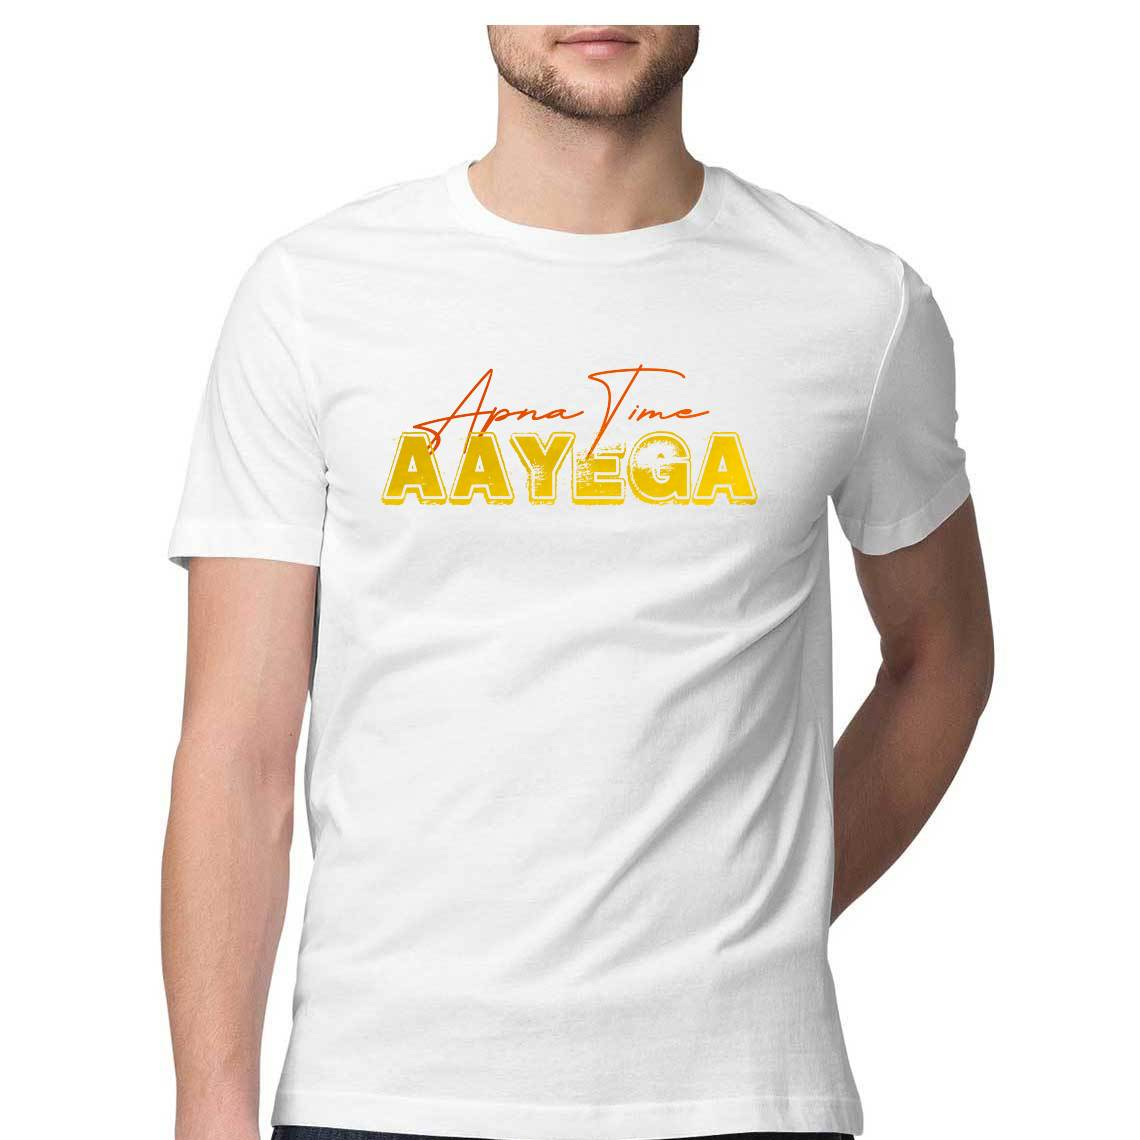 Apna Time Aayega Graphic Typography Gully Boy Men's Half-Sleeve T-Shirt